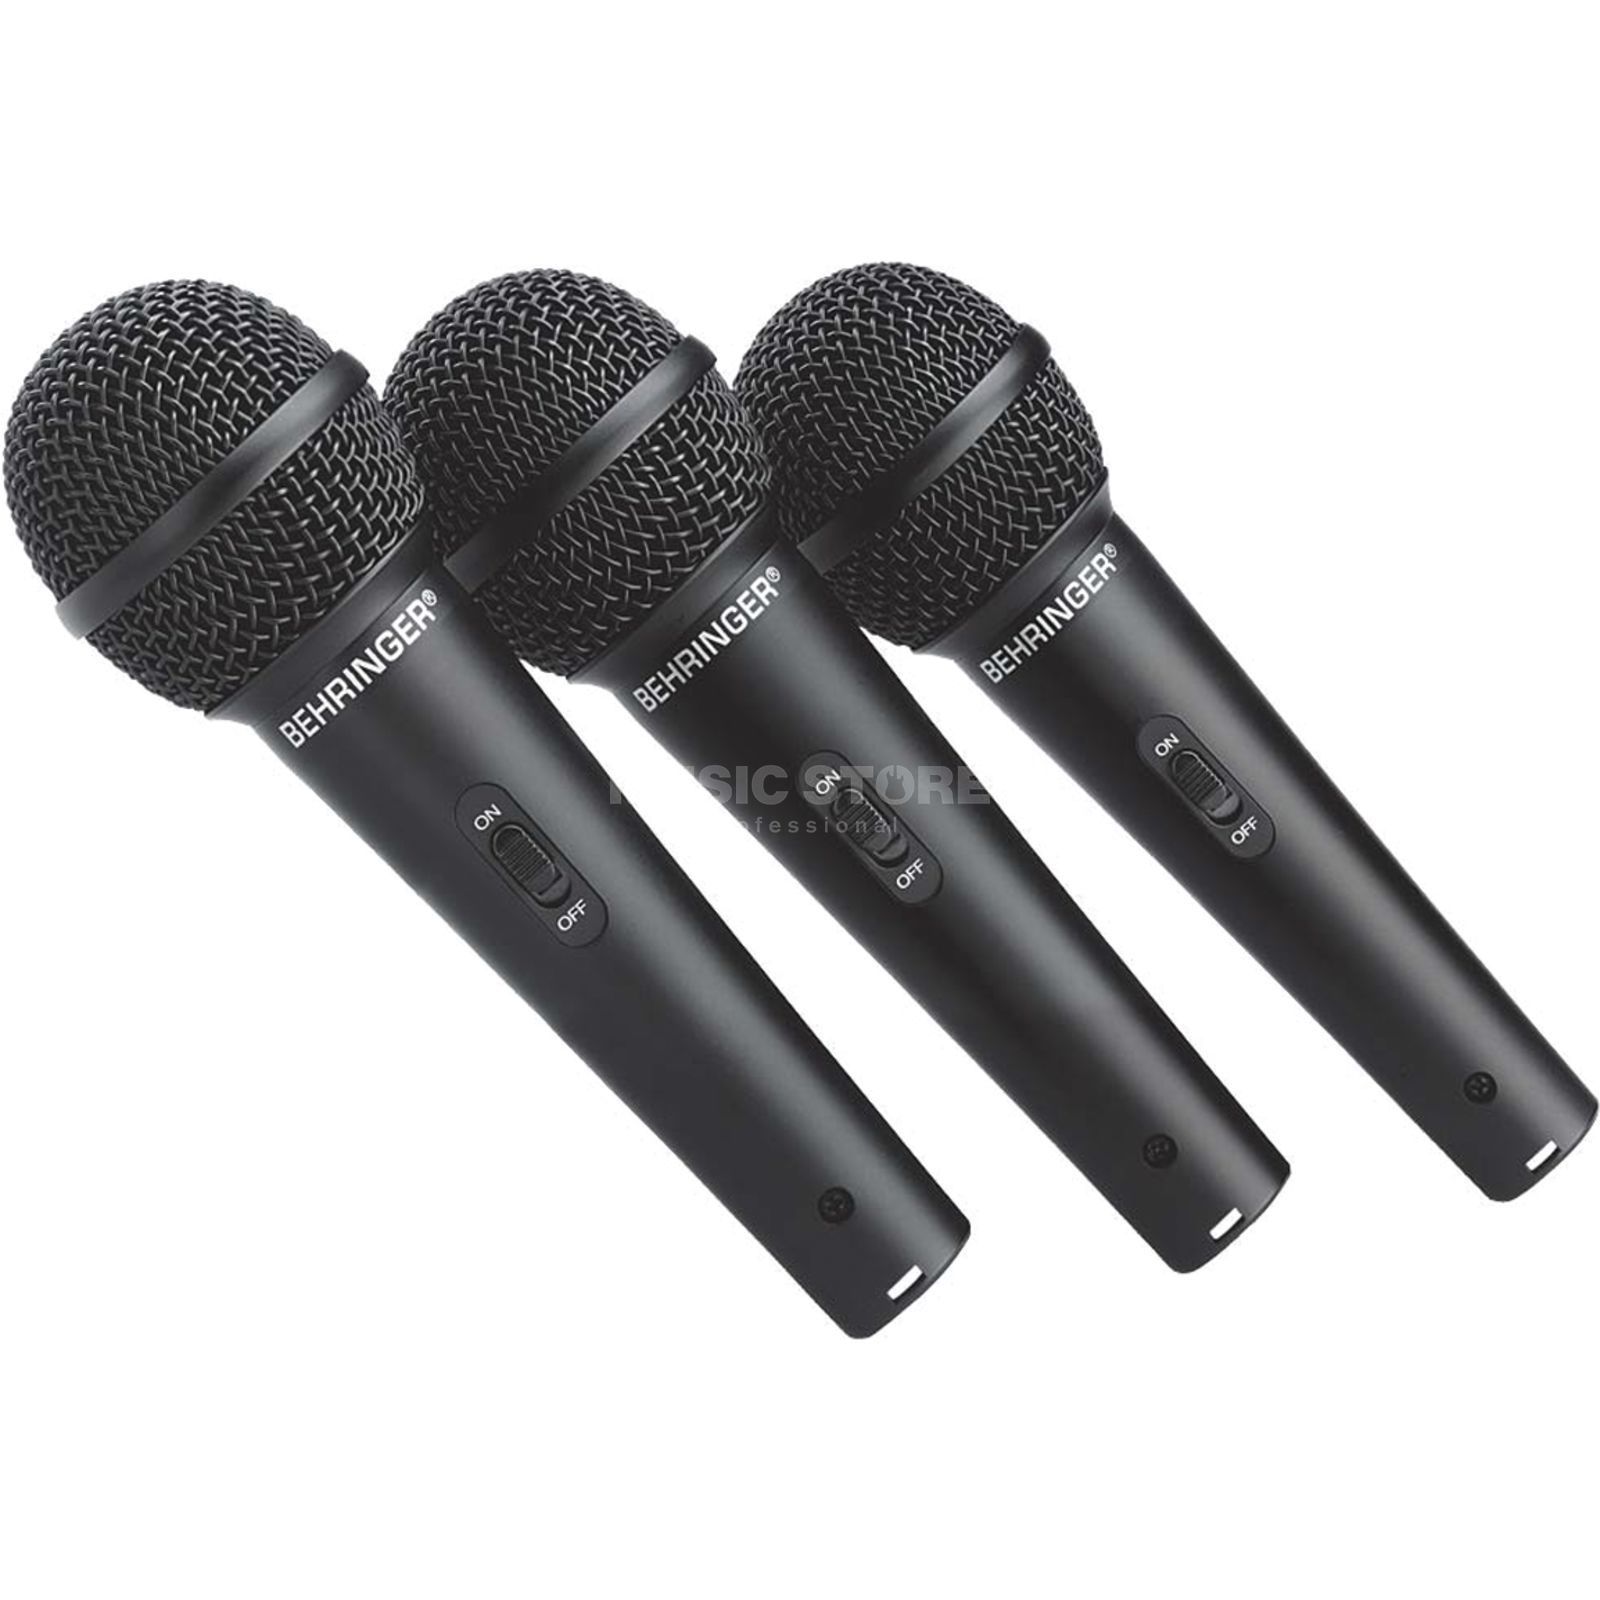 Behringer XM 1800S 3-PACK dynamic Microphone Product Image